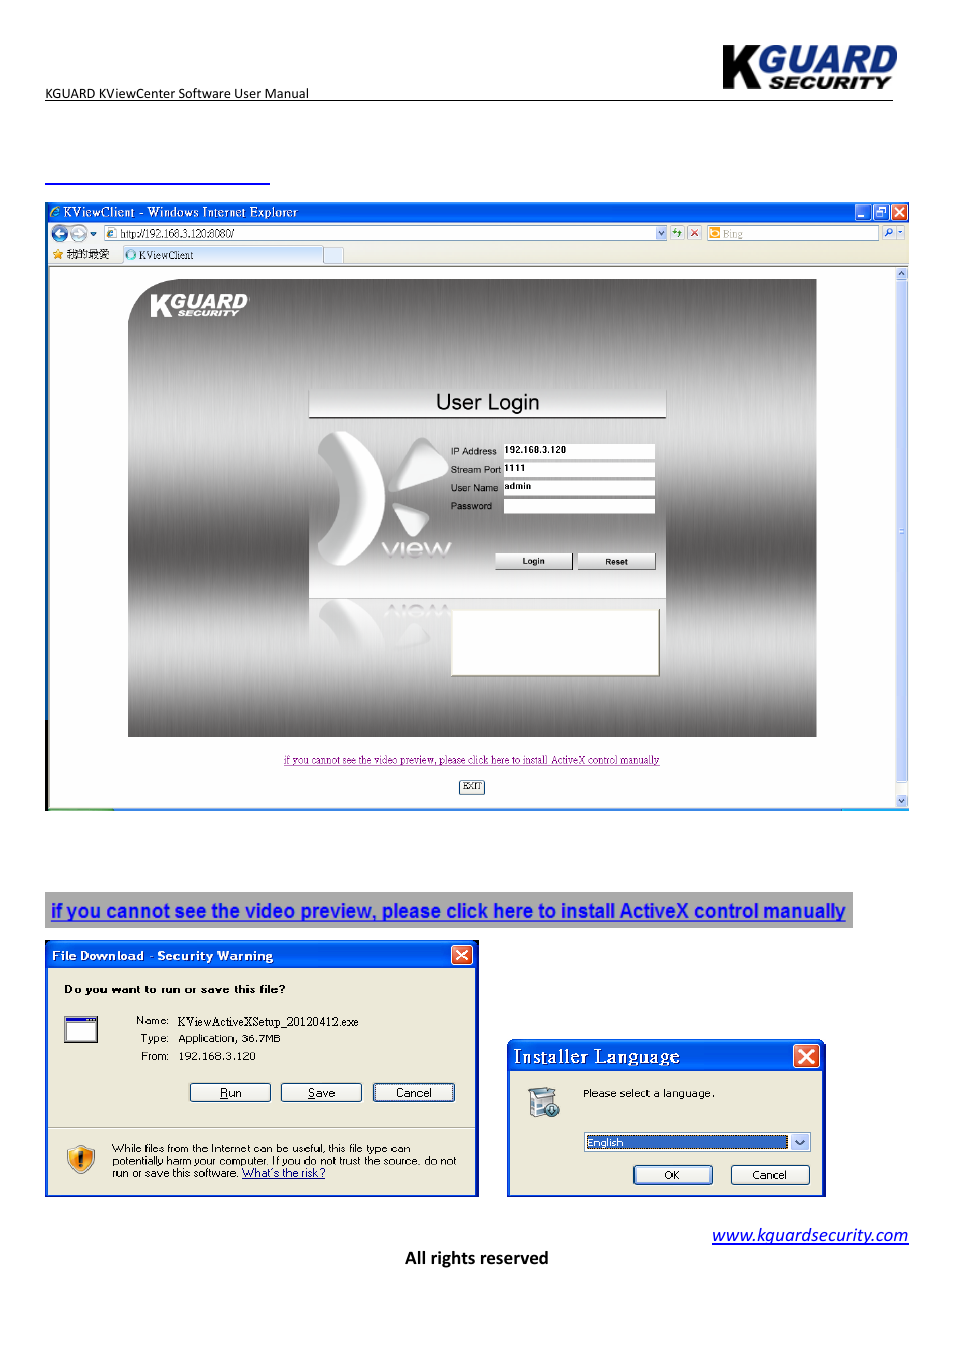 Ie ocx, Download / install dvr activex program | KGUARD Security